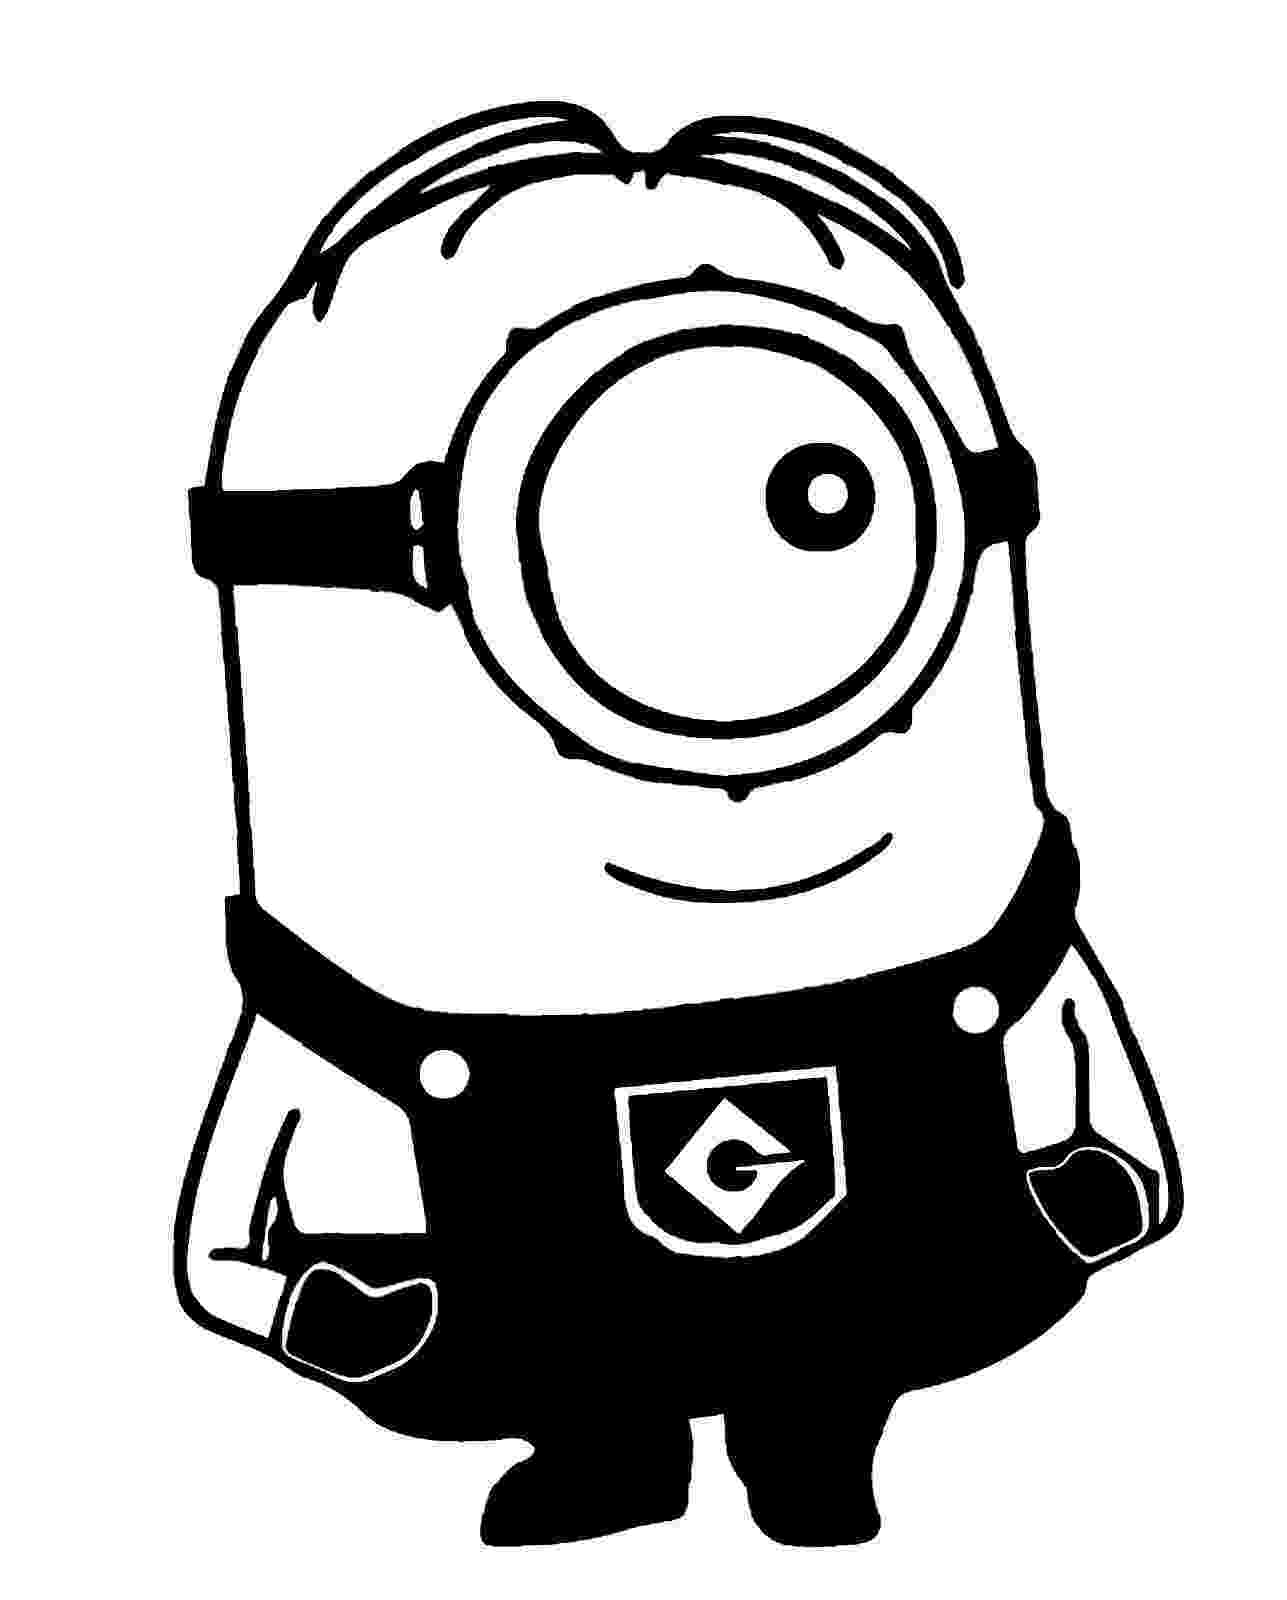 minions black and white despicable me sideways glance one eyed minion die cut white and black minions